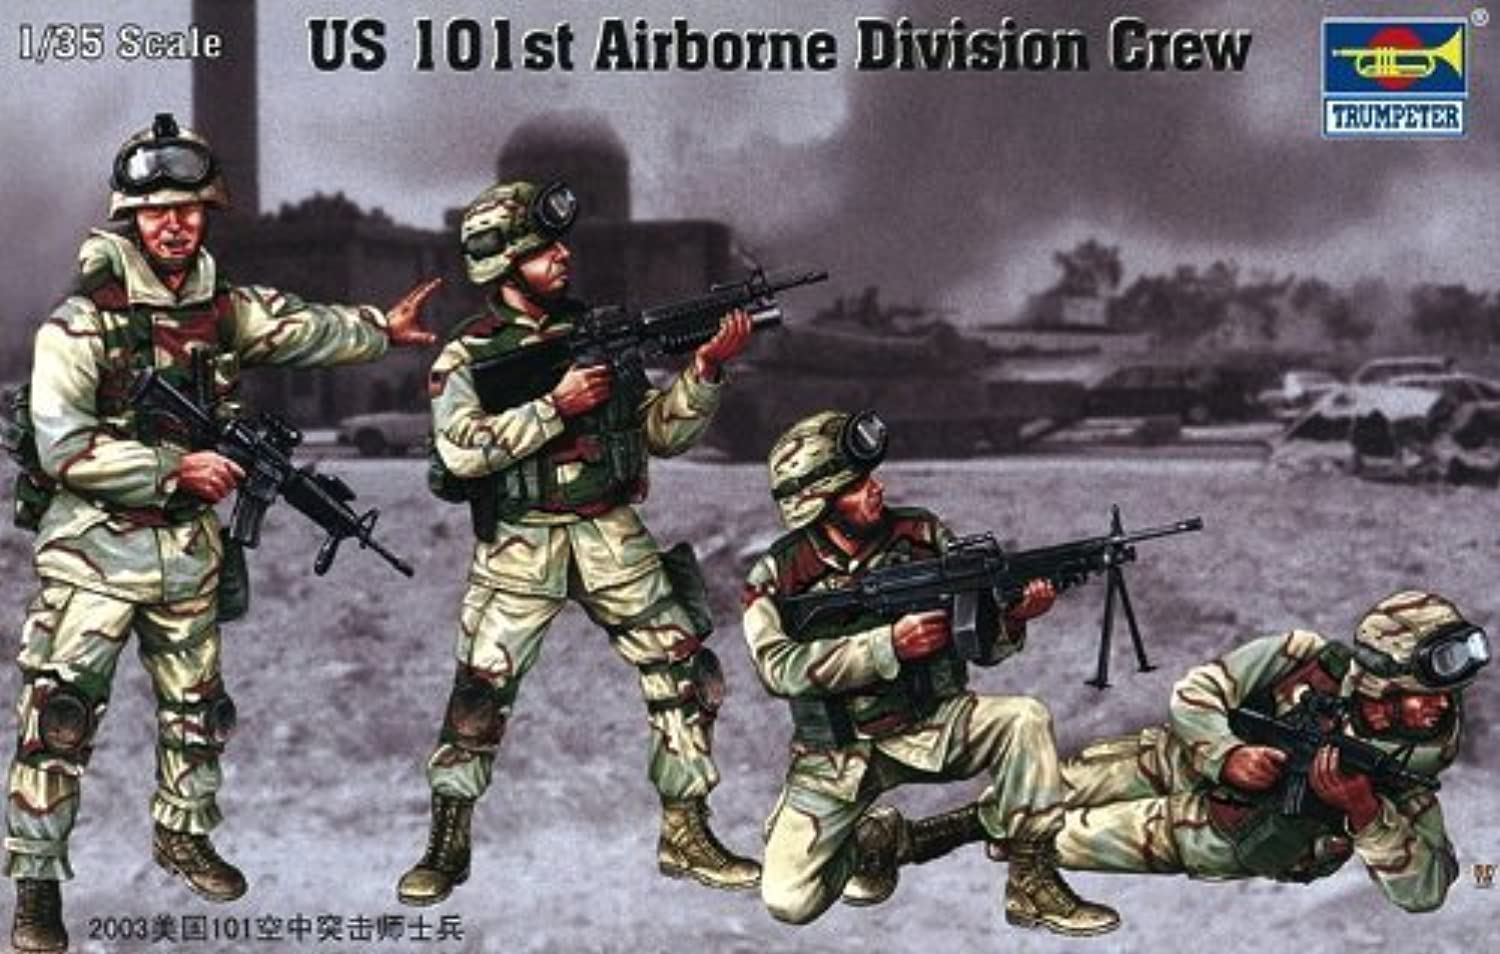 Trumpeter US 101st Airborne Division Crew Figure Set, Scale 1 35, 4Pack by Trumpeter